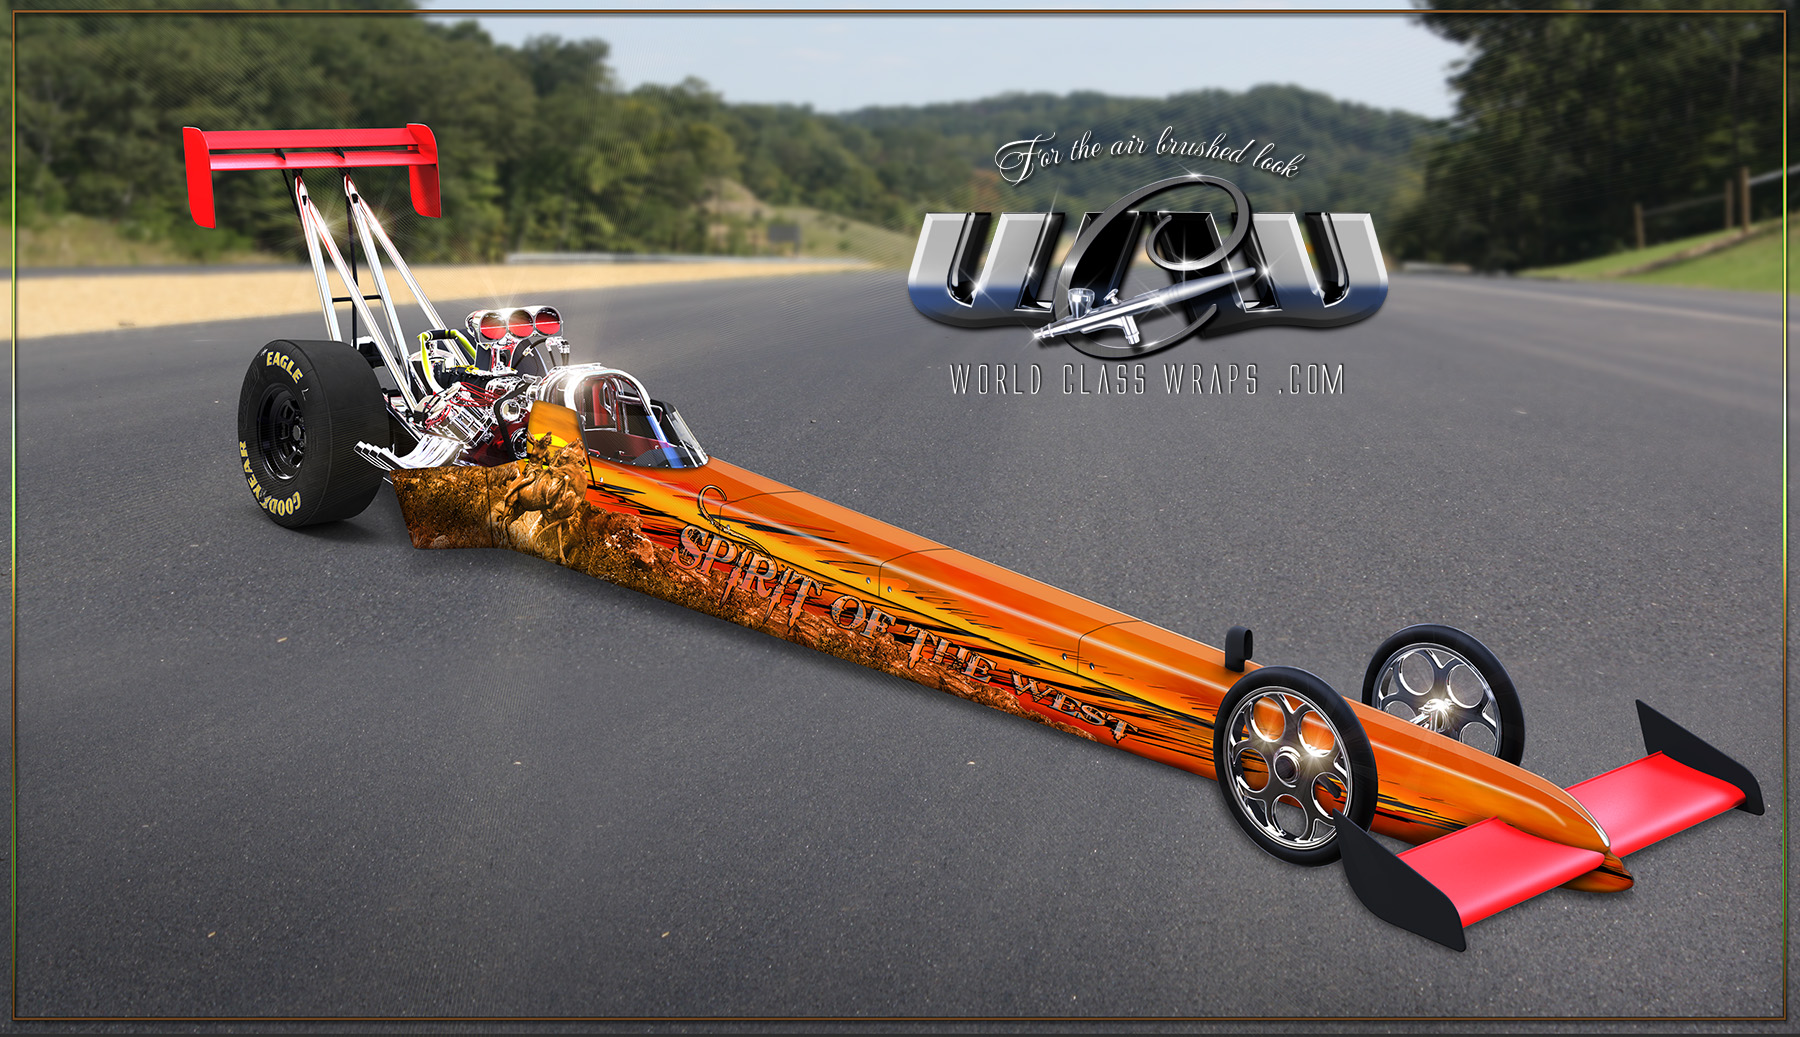 CUSTOM DRAGSTER WRAP IMAGE